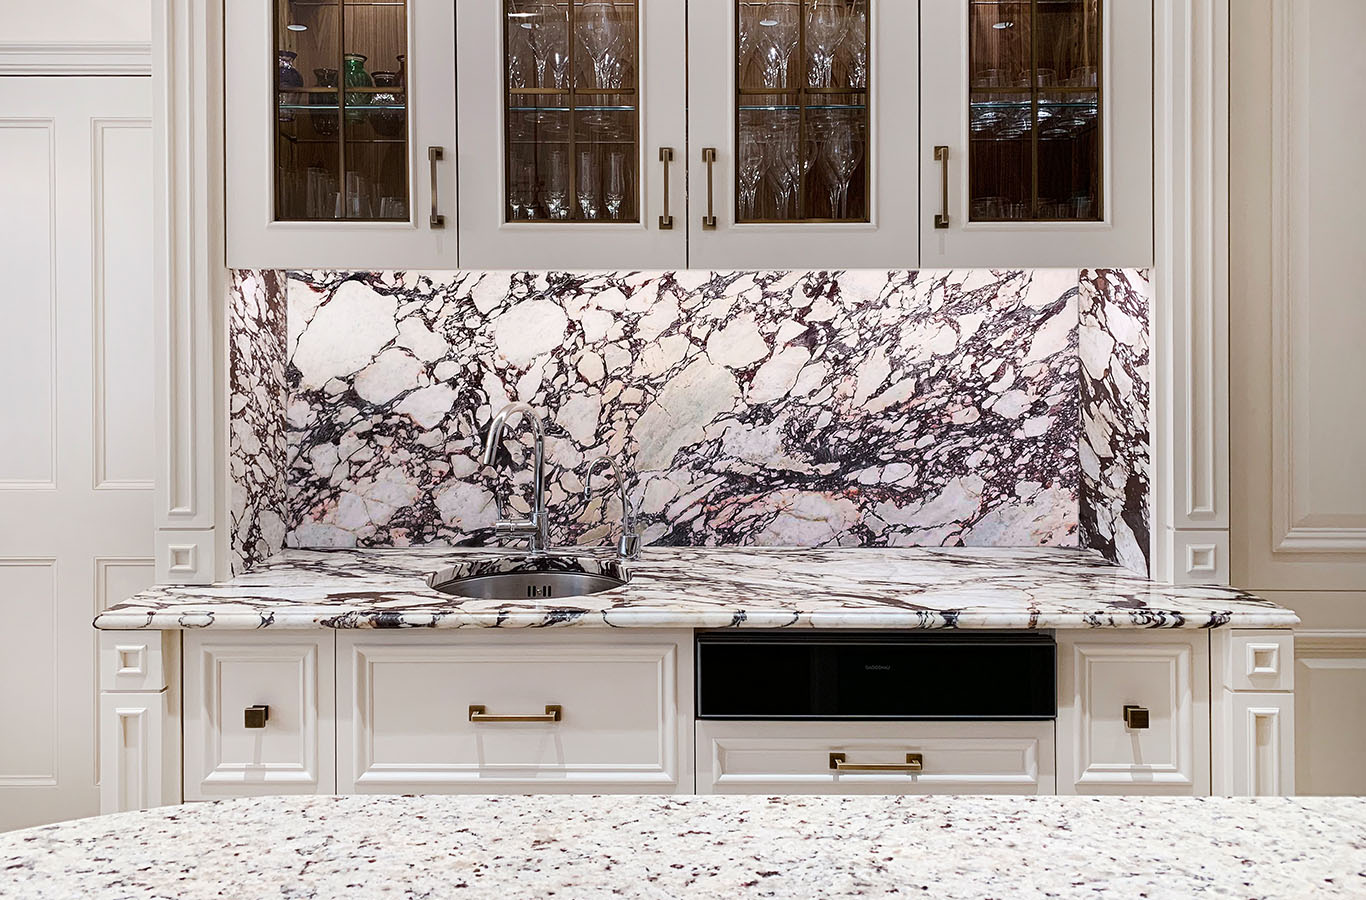 More People In London Today Are Choosing Stone For Their Kitchen Worktops